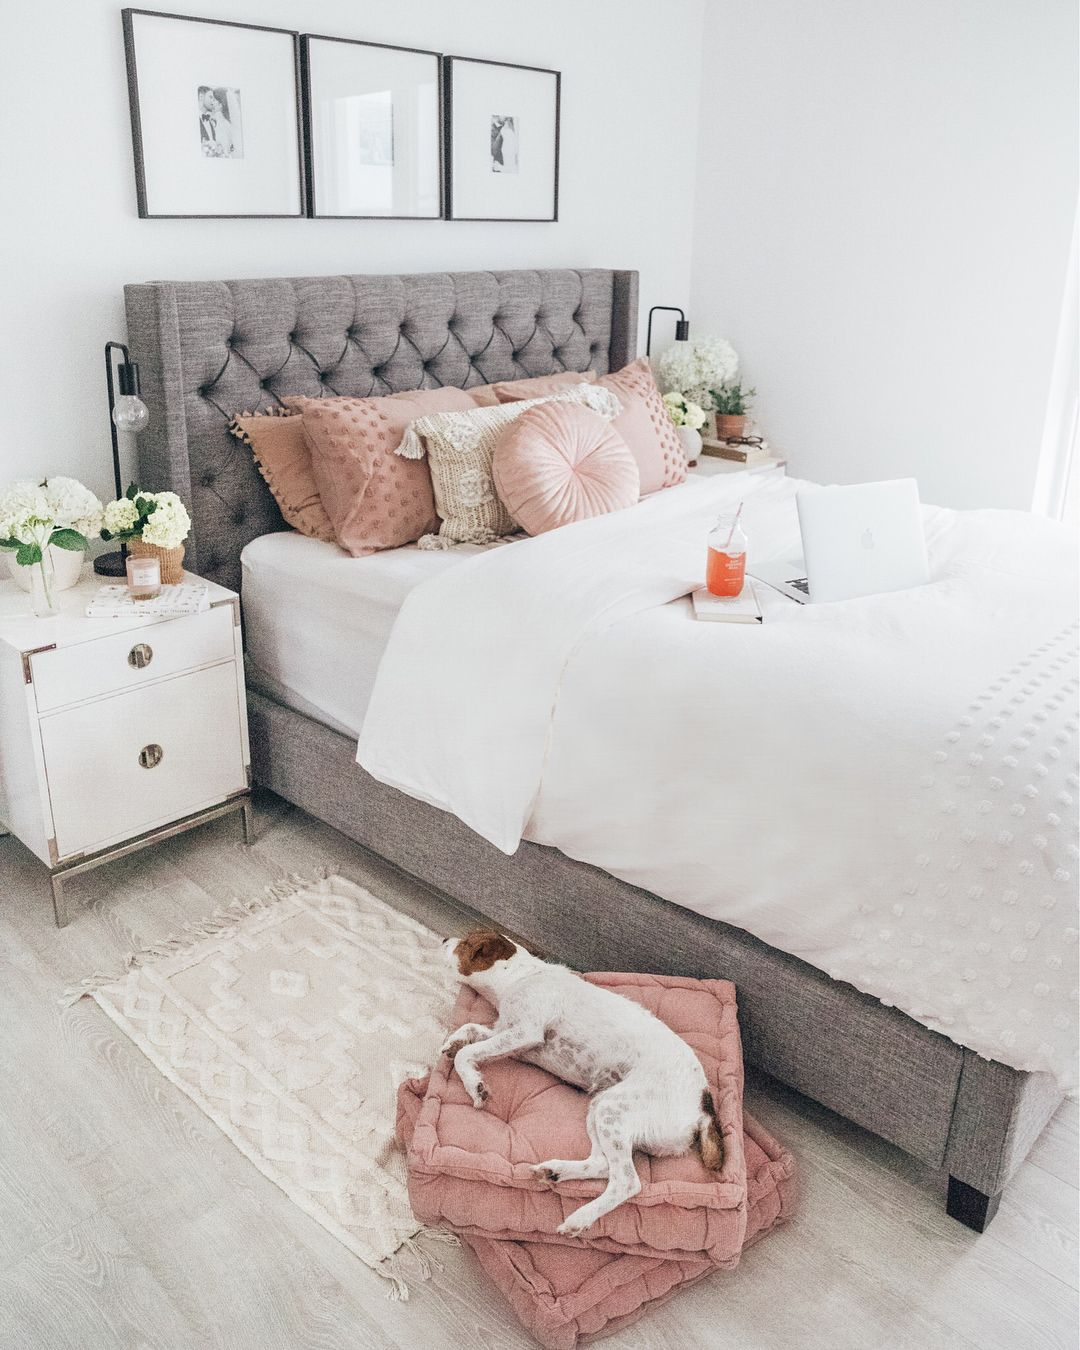 Go Bed And Bath: Bedroom & Bath Updates On The Blog Today With Affordable